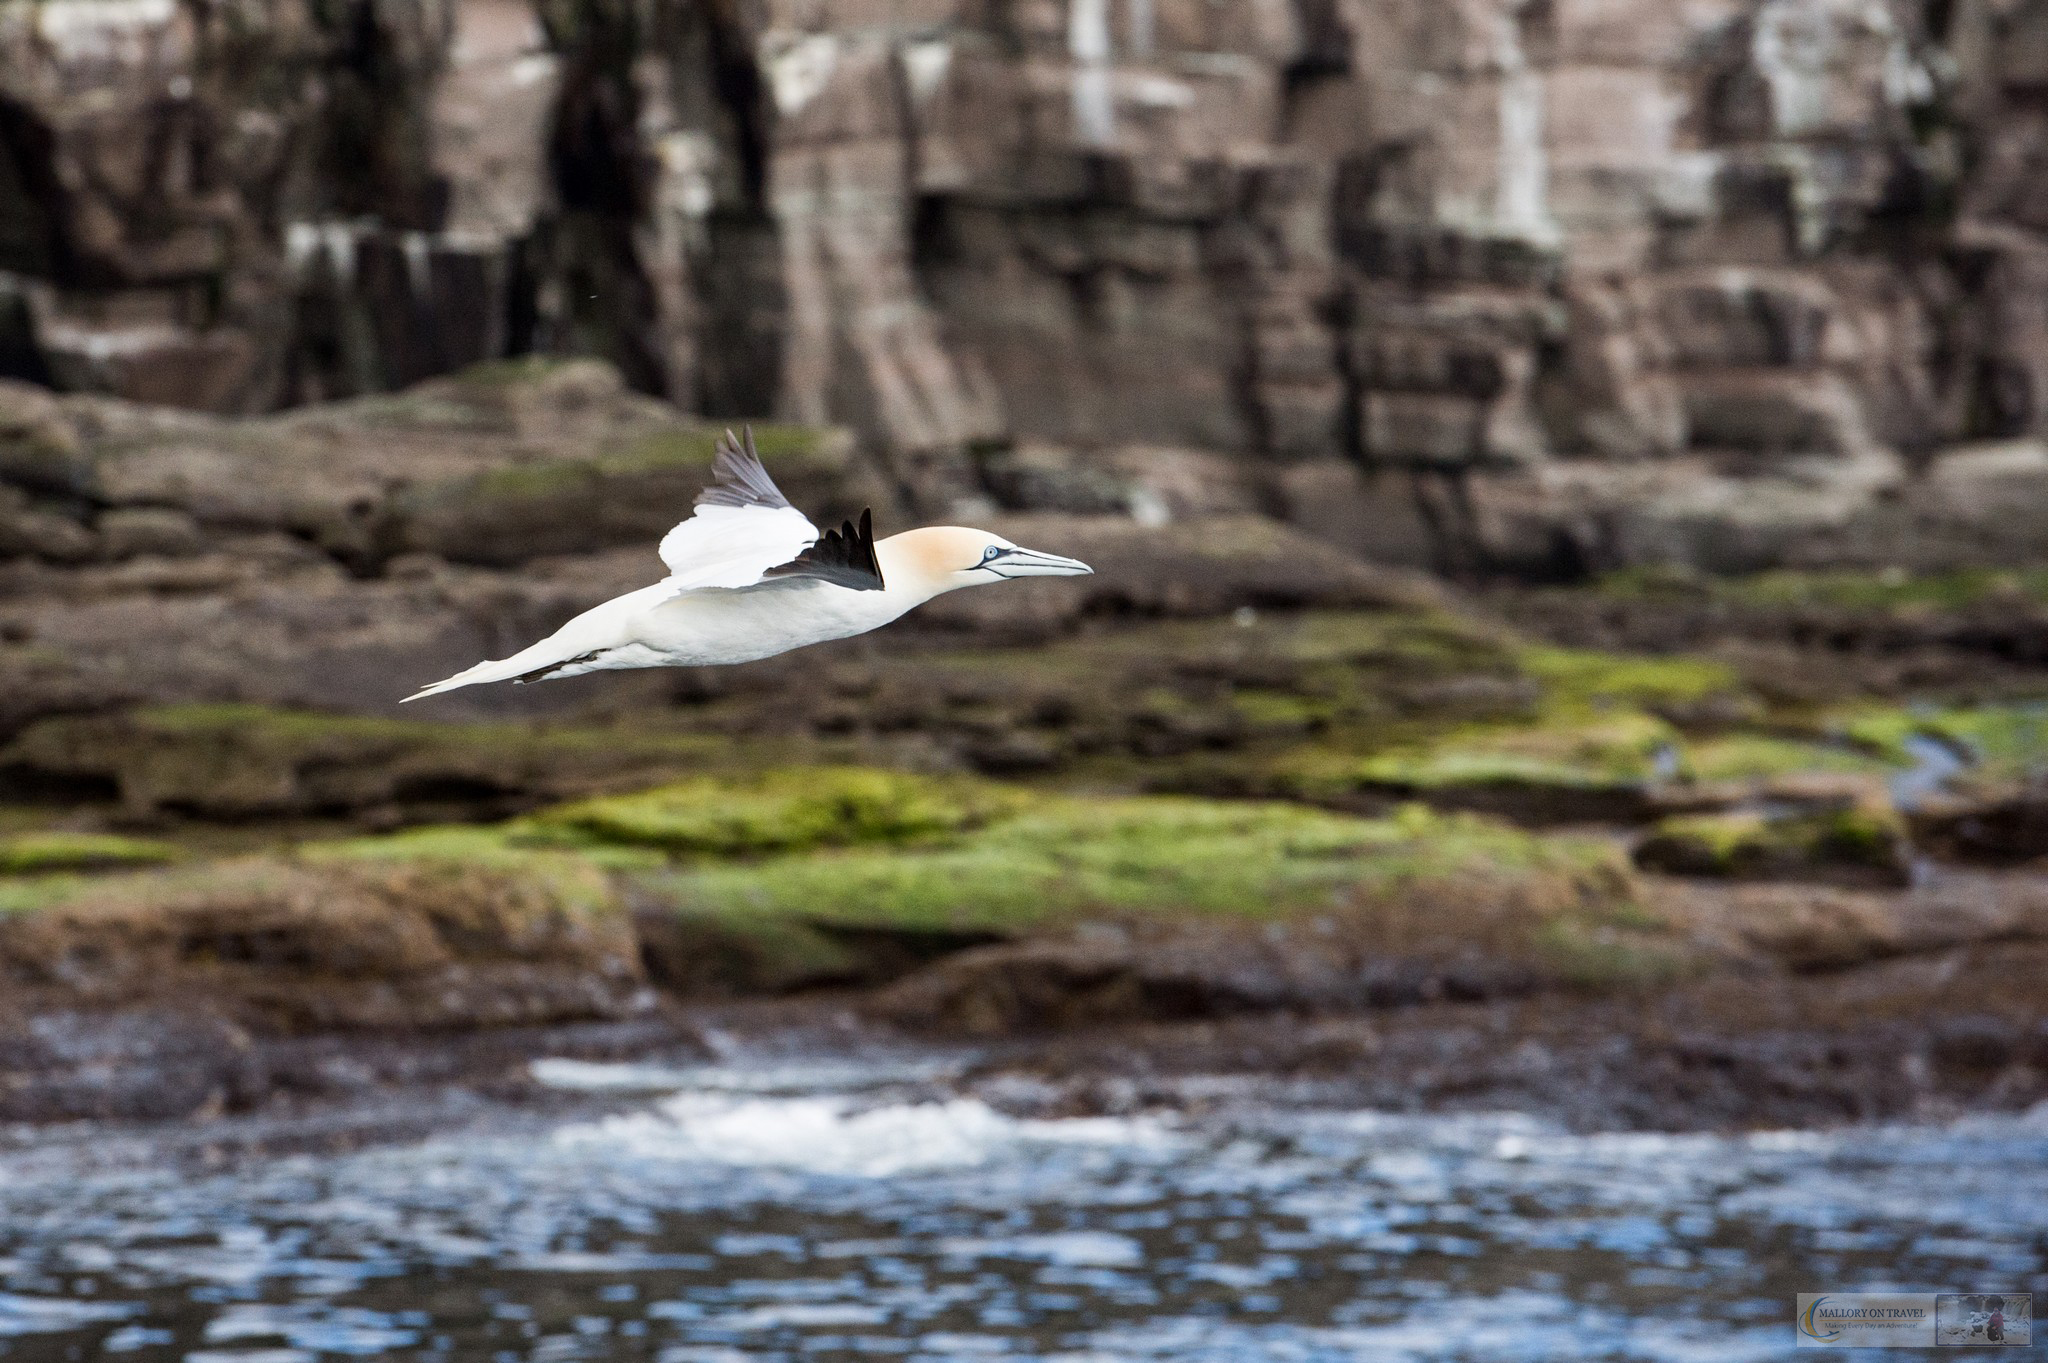 A flying gannet on the Shetland Islands in the highlands and islands of Scotland on Mallory on Travel adventure travel, photography, travel iain-mallory_scotland9752